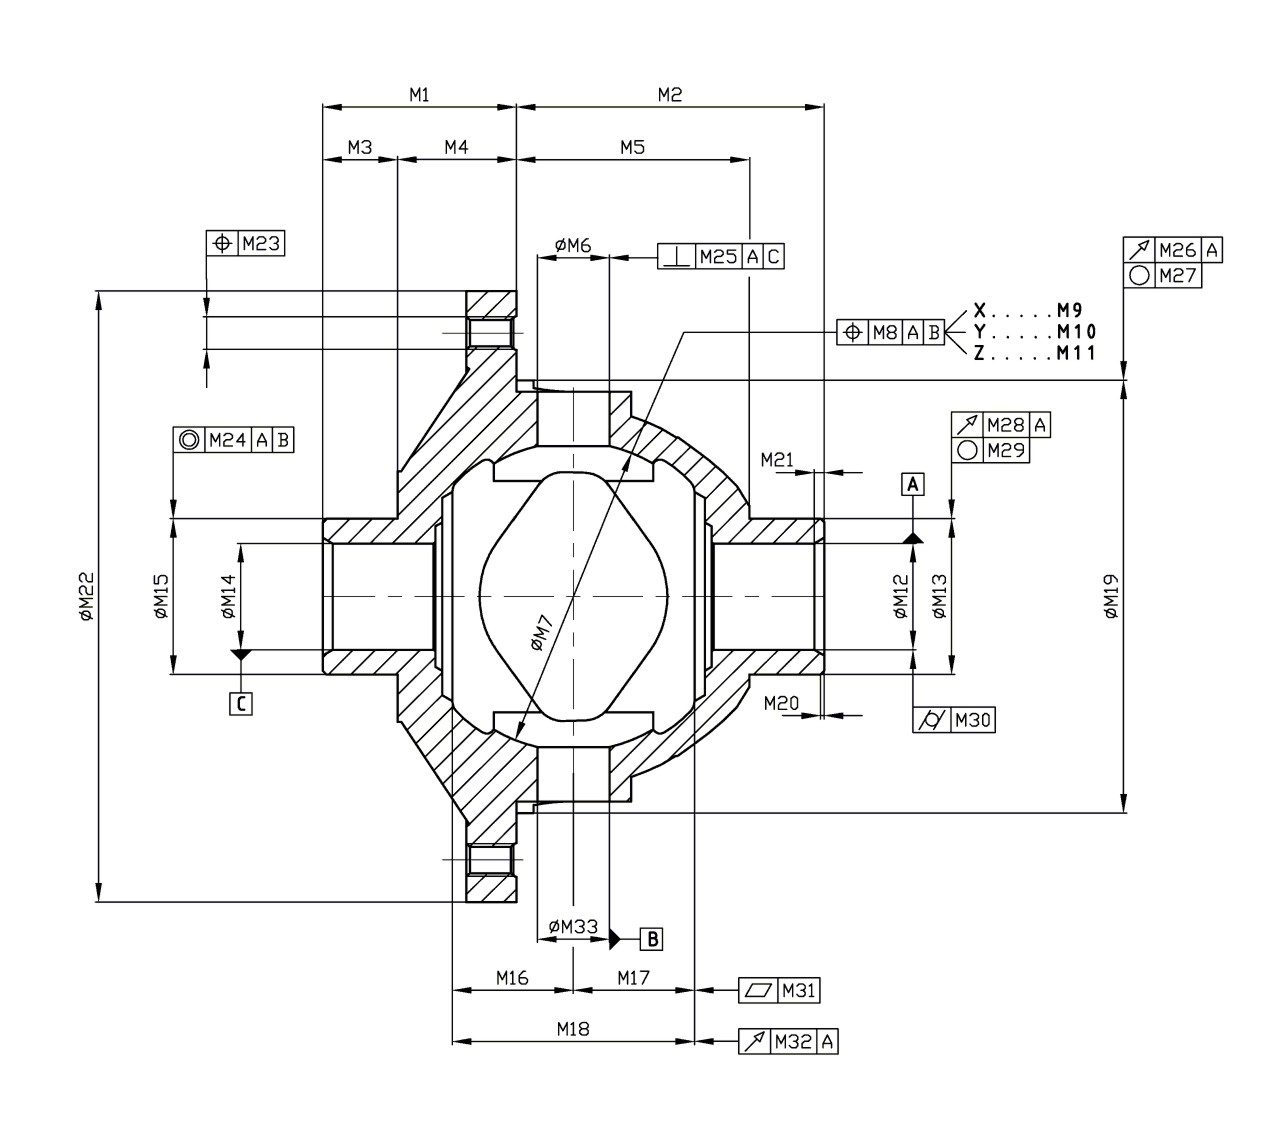 Differential Housing Amest Sro 1000 Images About Electronics On Pinterest Circuit Diagram